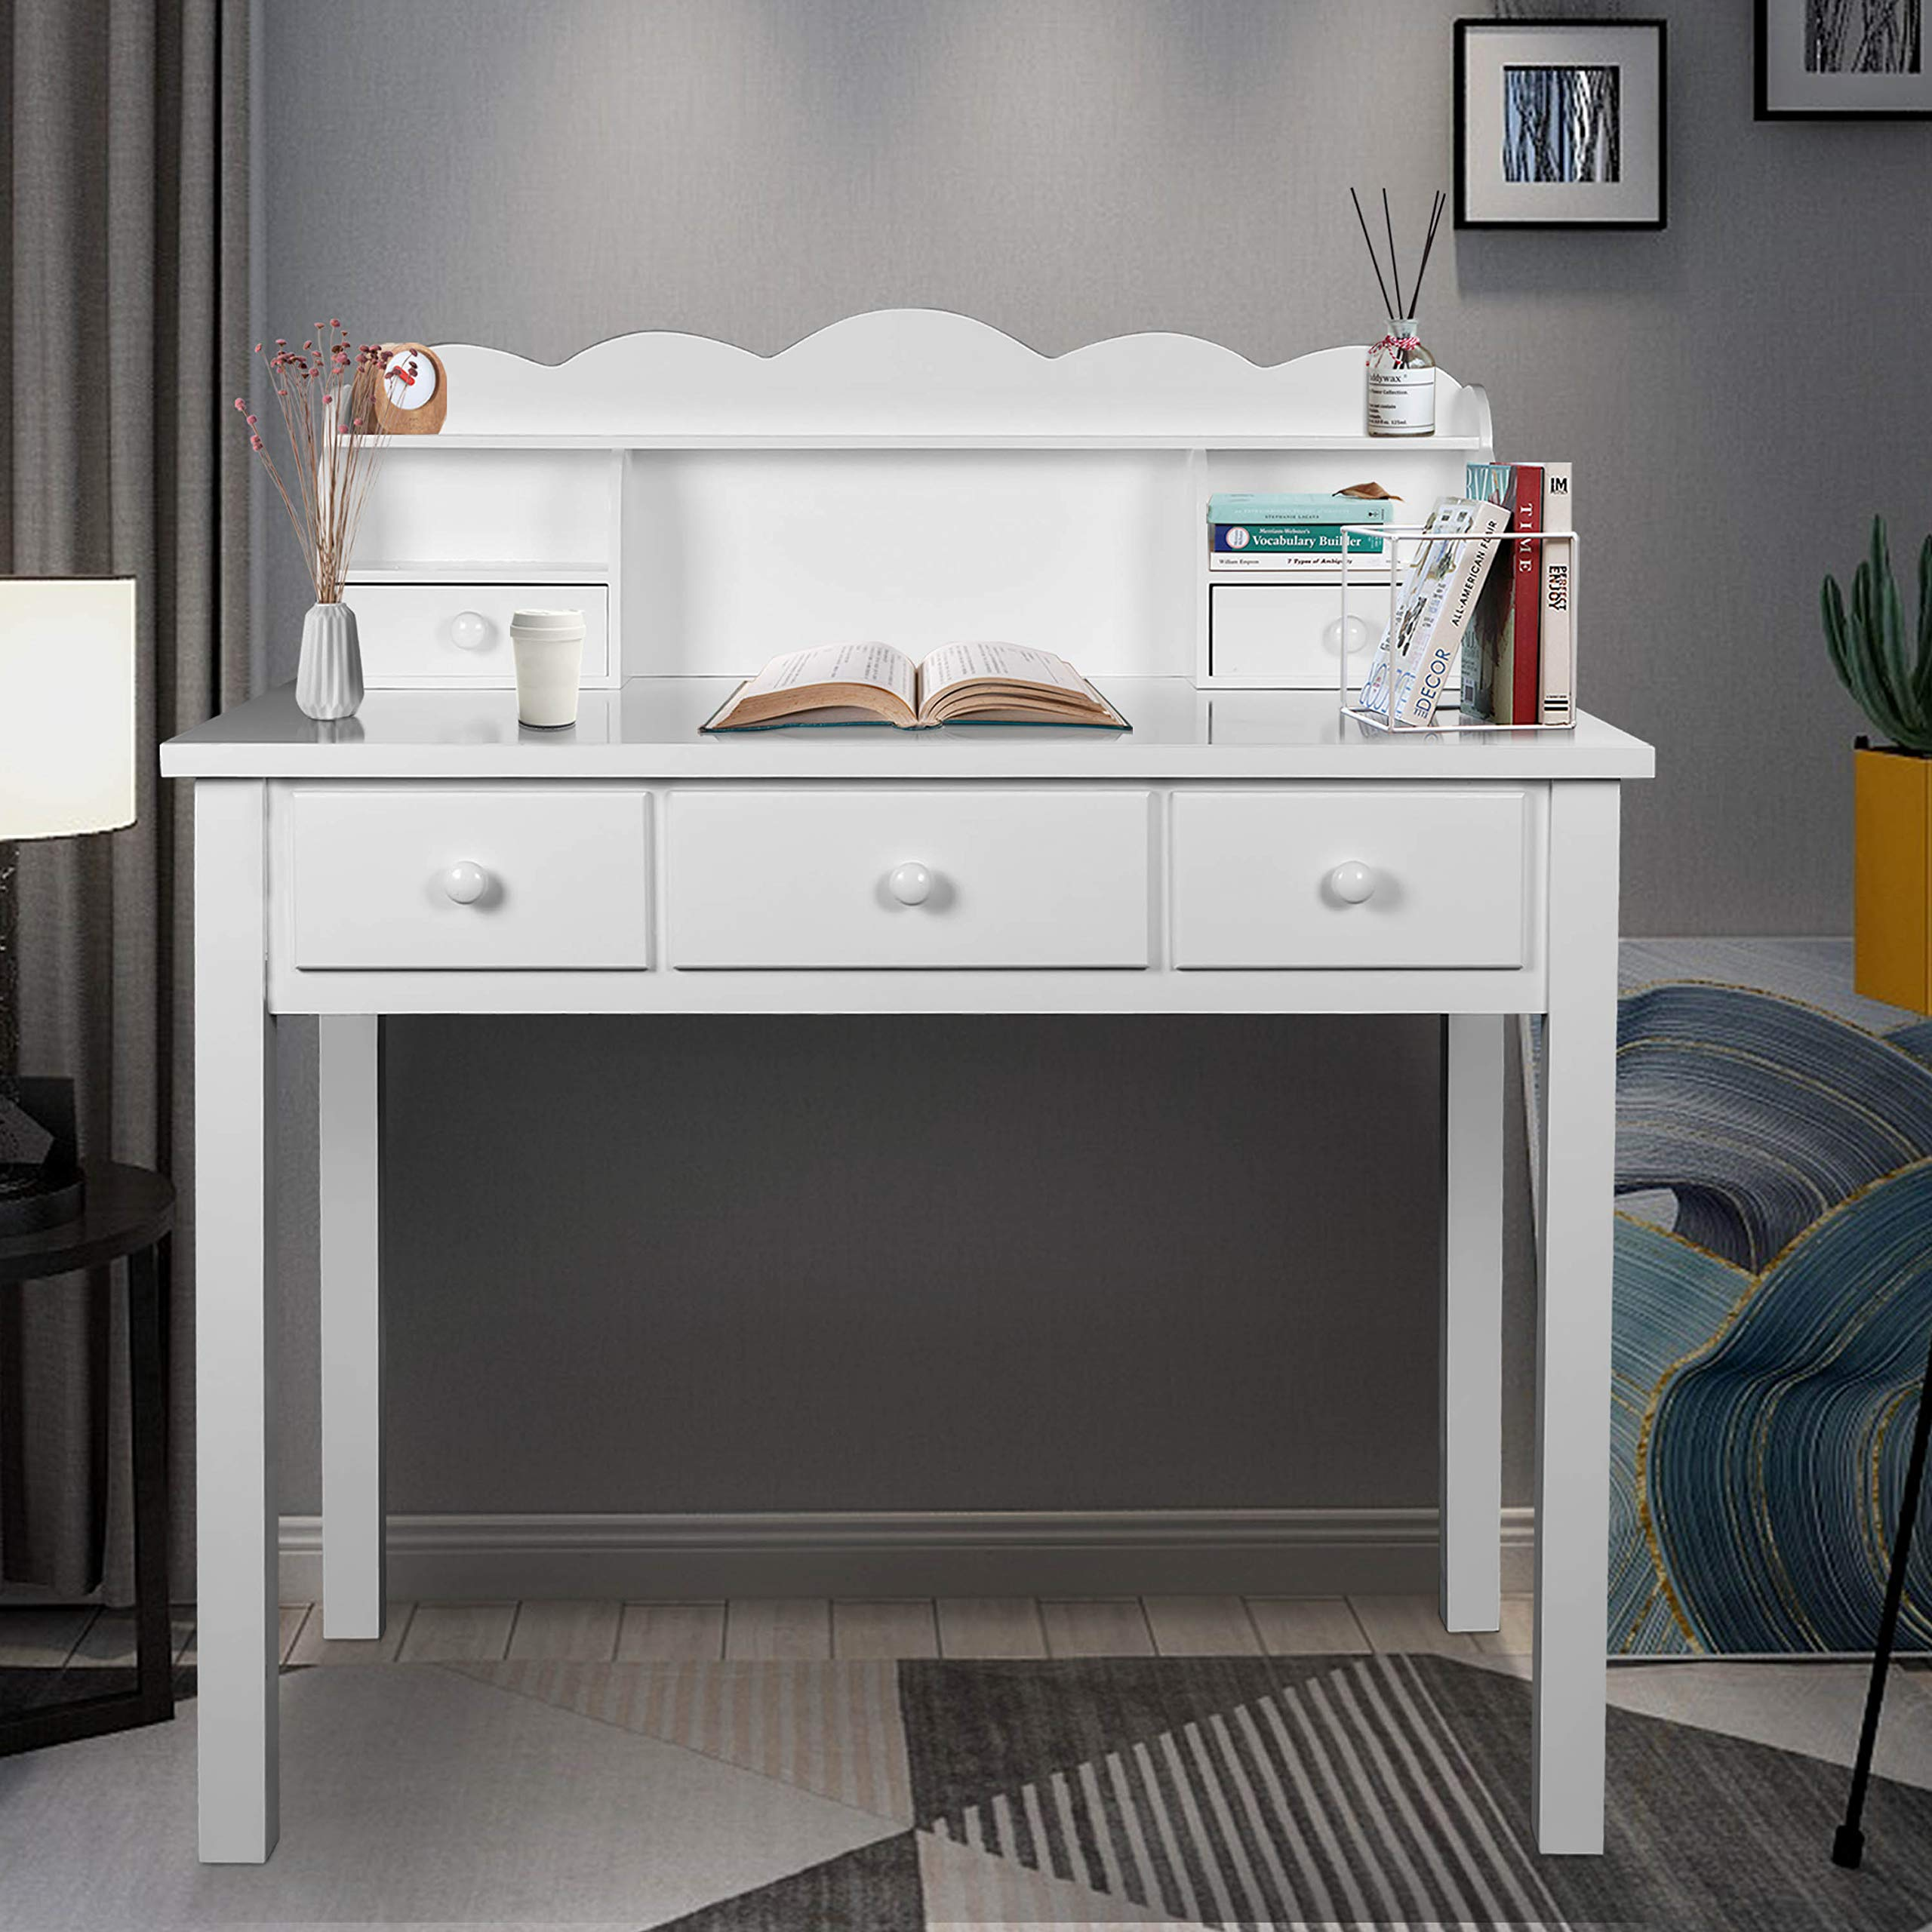 Home Office Furniture Writing Desk,Computer Work Station with Detachable Hutch,5 Drawers(White) by FUNKOCO